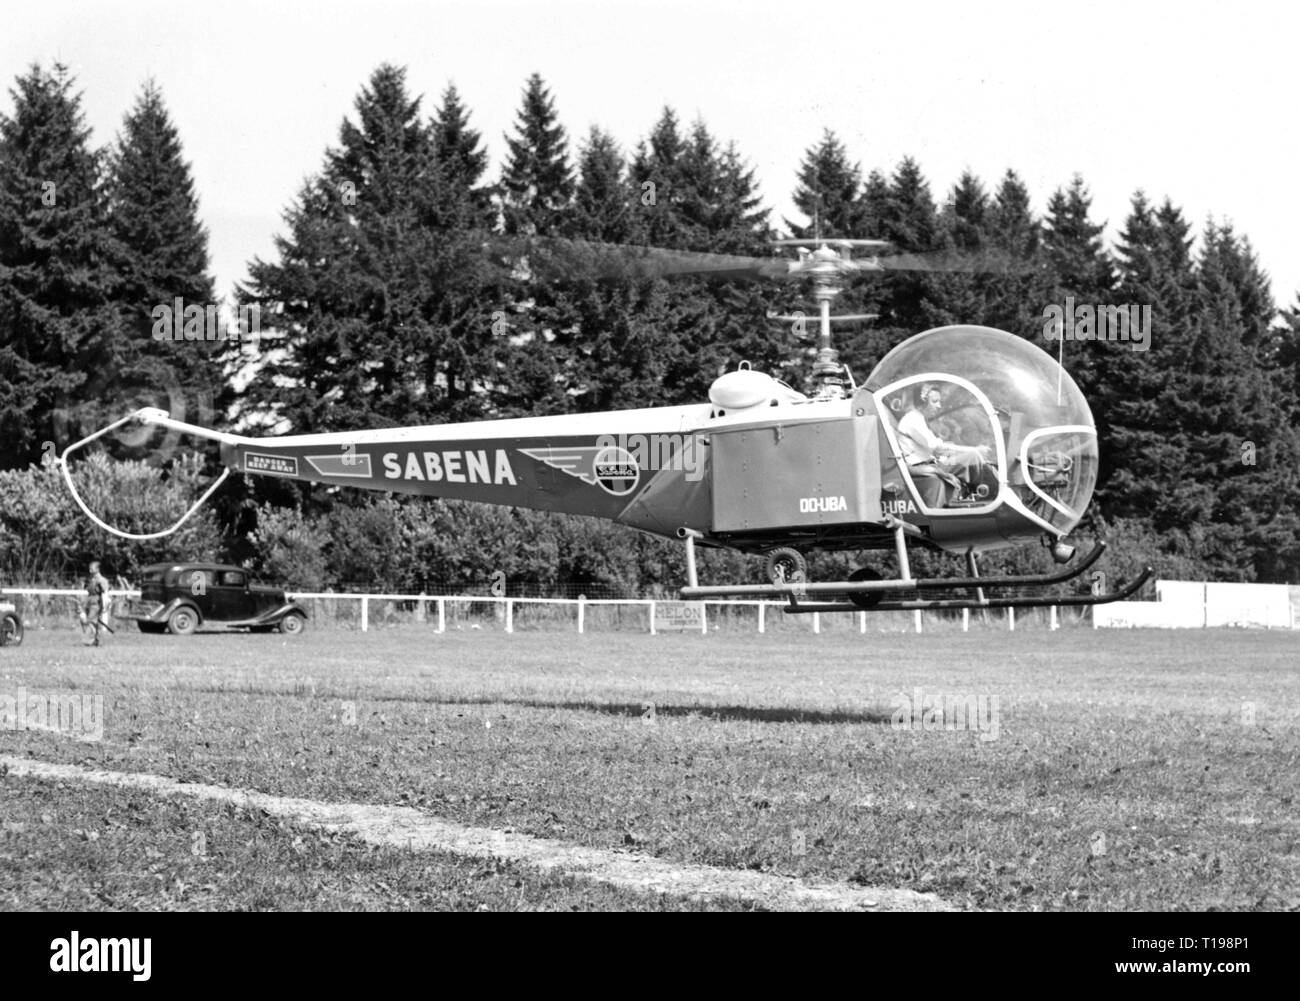 mail, airmail, helicopter Bell 47 D in the postal service of the Sabena, landing on a sports field, Belgium, 1950, Additional-Rights-Clearance-Info-Not-Available Stock Photo